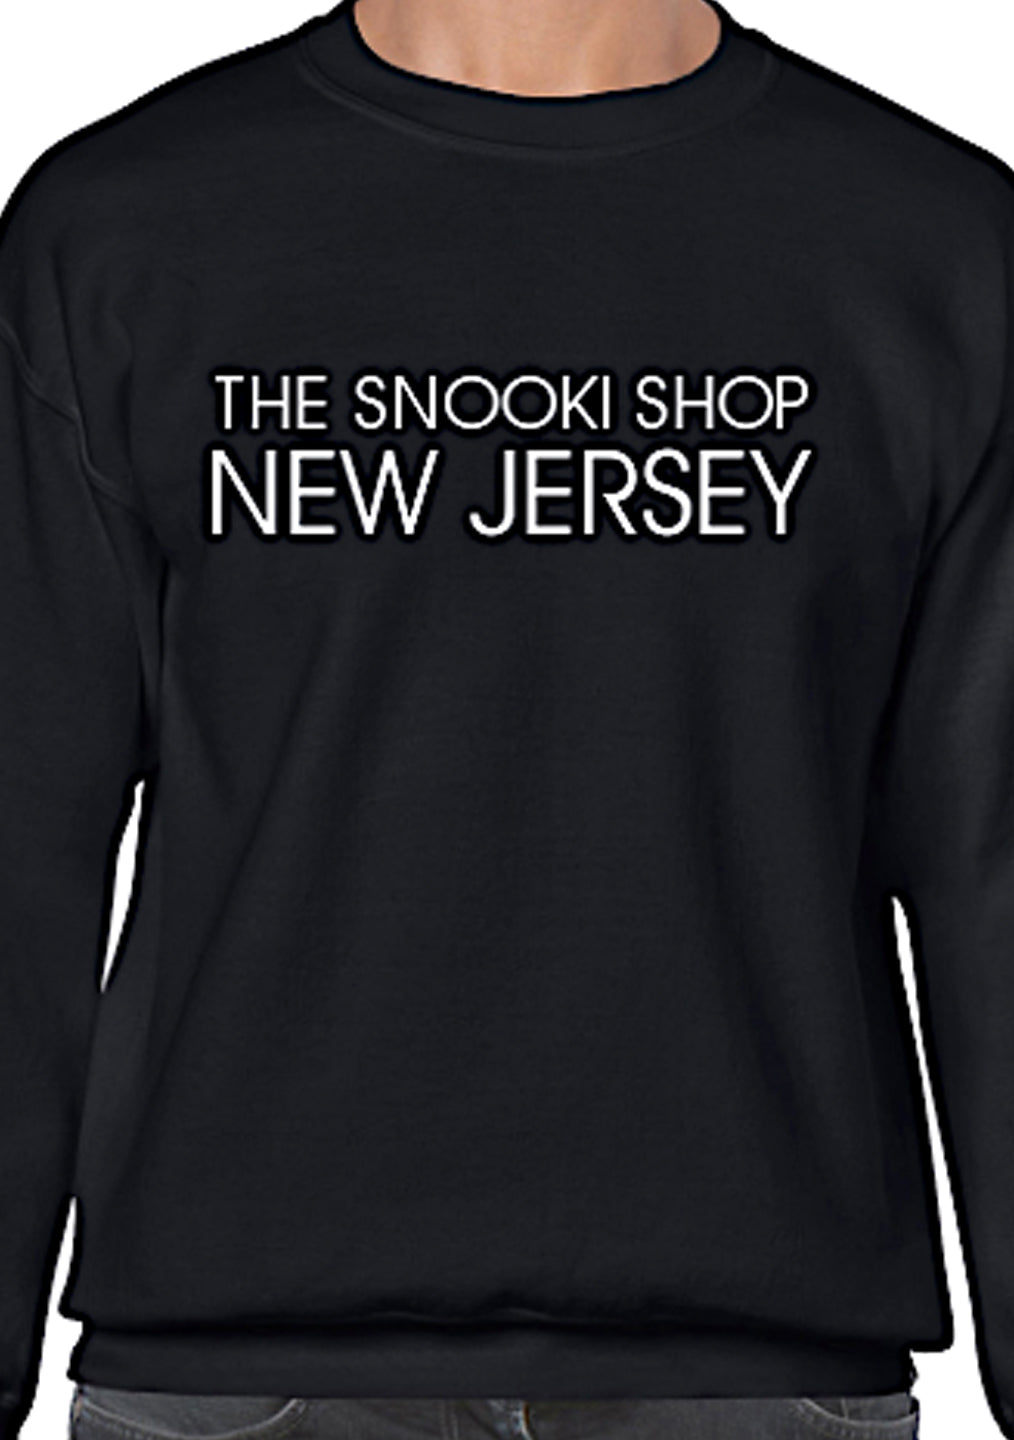 Black The Snooki Shop Sweatshirt